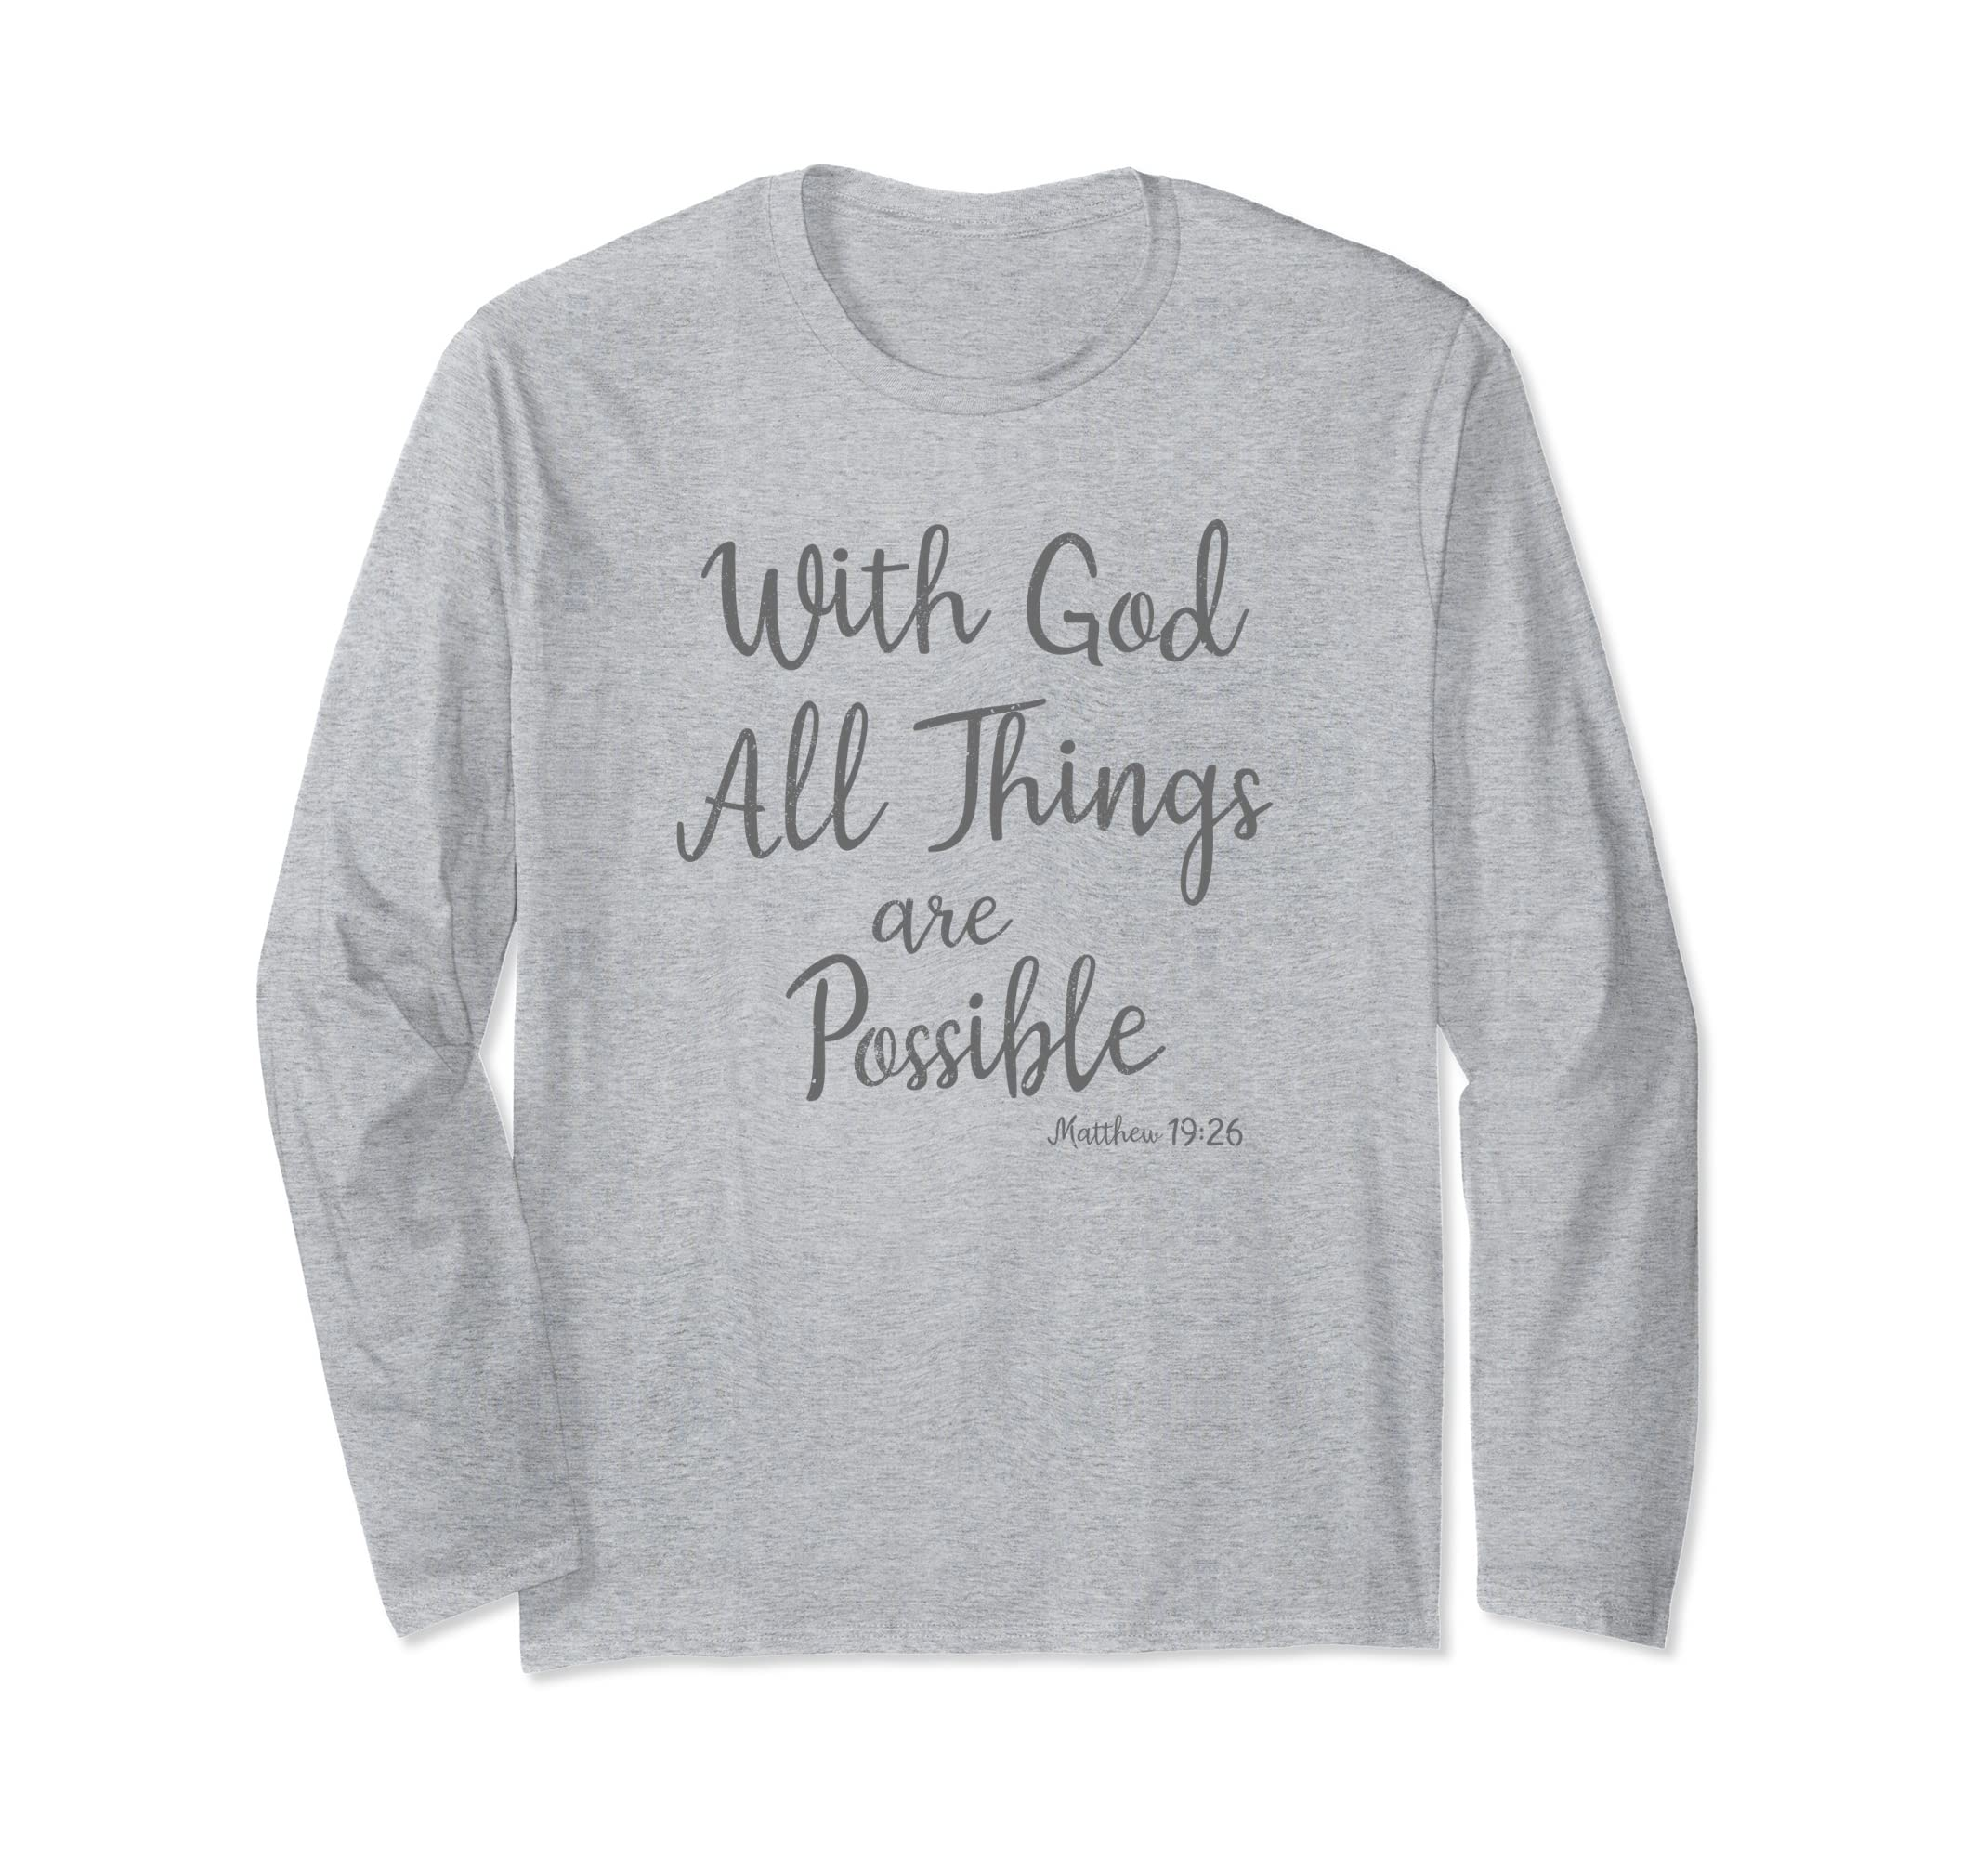 Cute Christian Shirts With Long Sleeves for Religious Women-mt